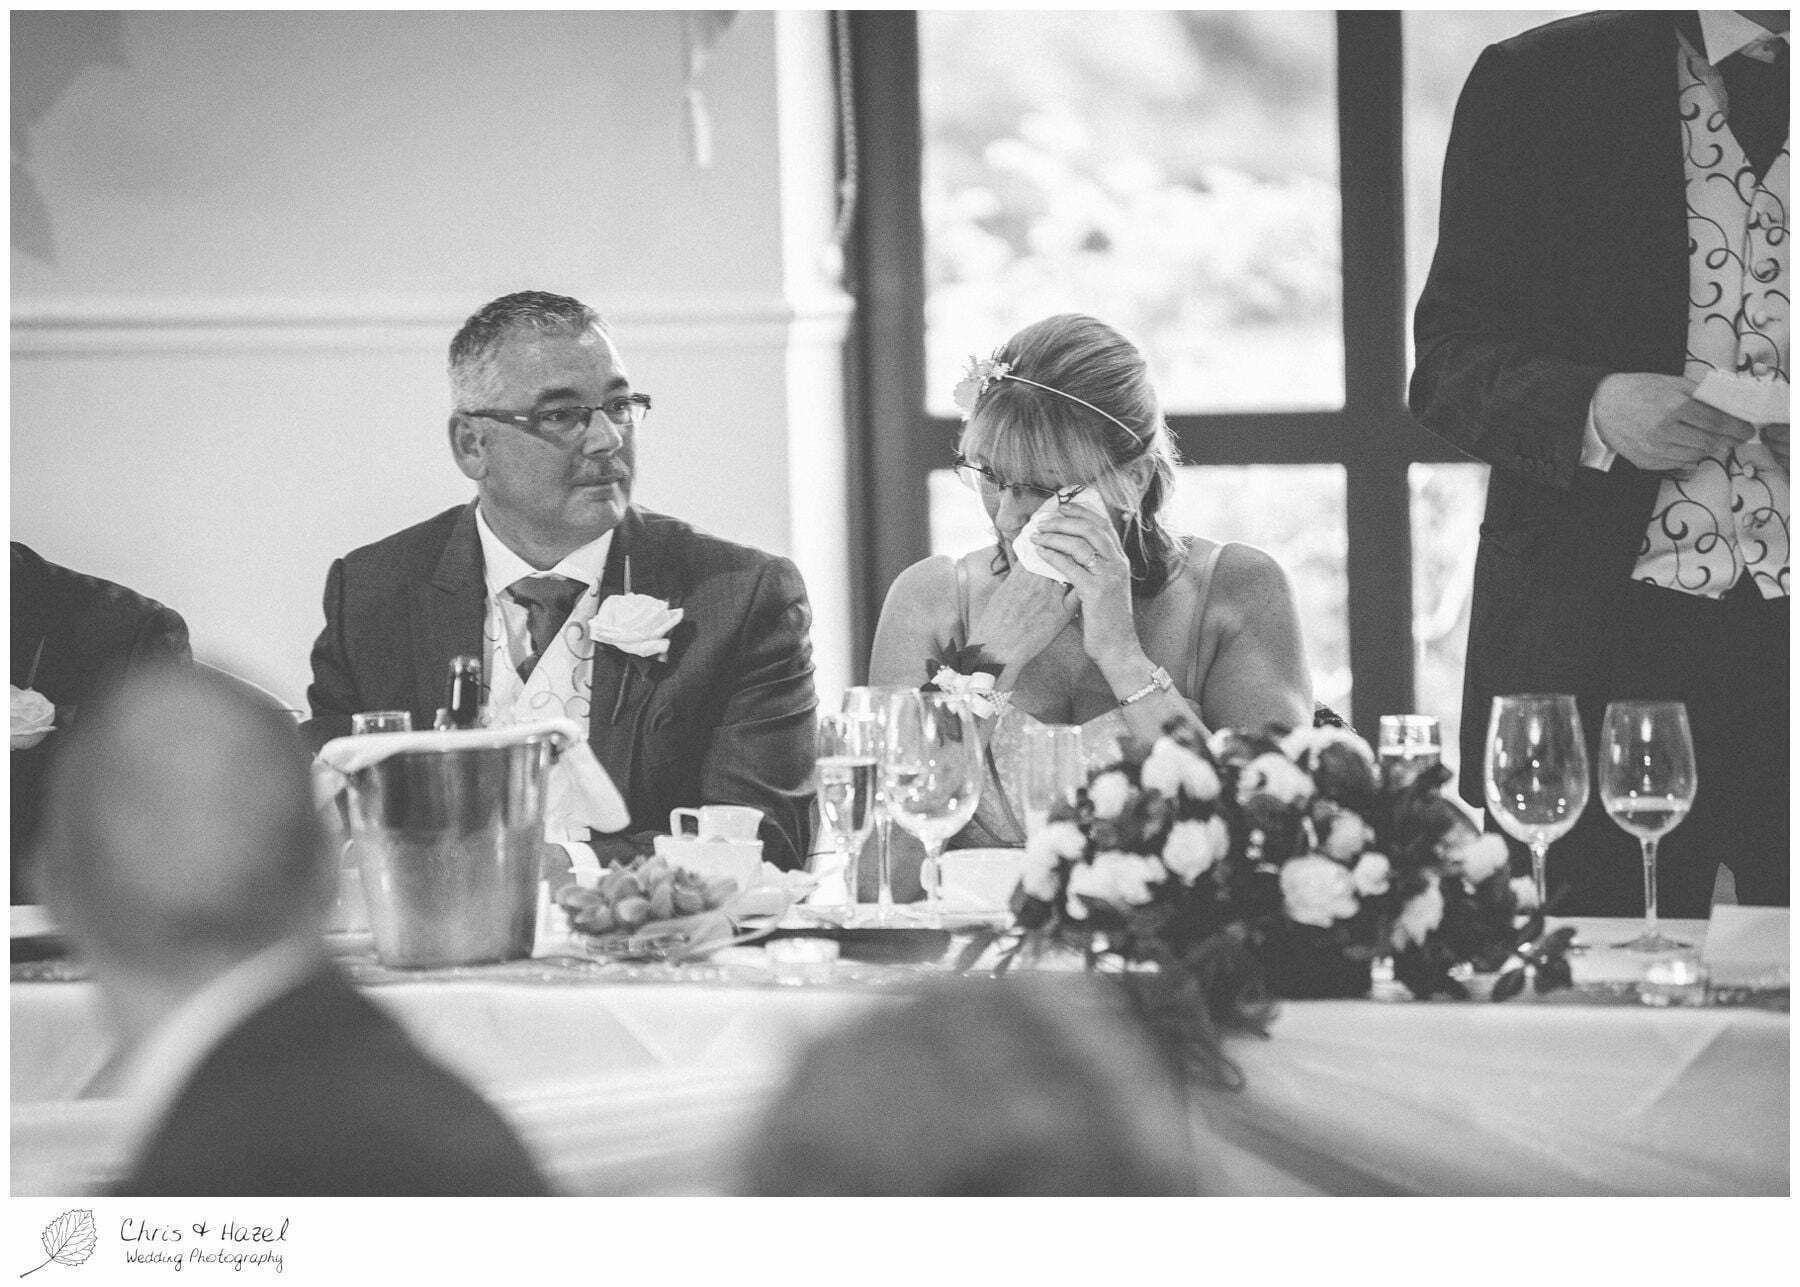 groom speech reaction, bagden hall wedding venue, documentary wedding photography, denny dale, huddersfield, Wedding Photographer, Bagden Hall, Wedding Photography, Chris and Hazel Wedding Photography, Alex tomenson, Vicky hunt